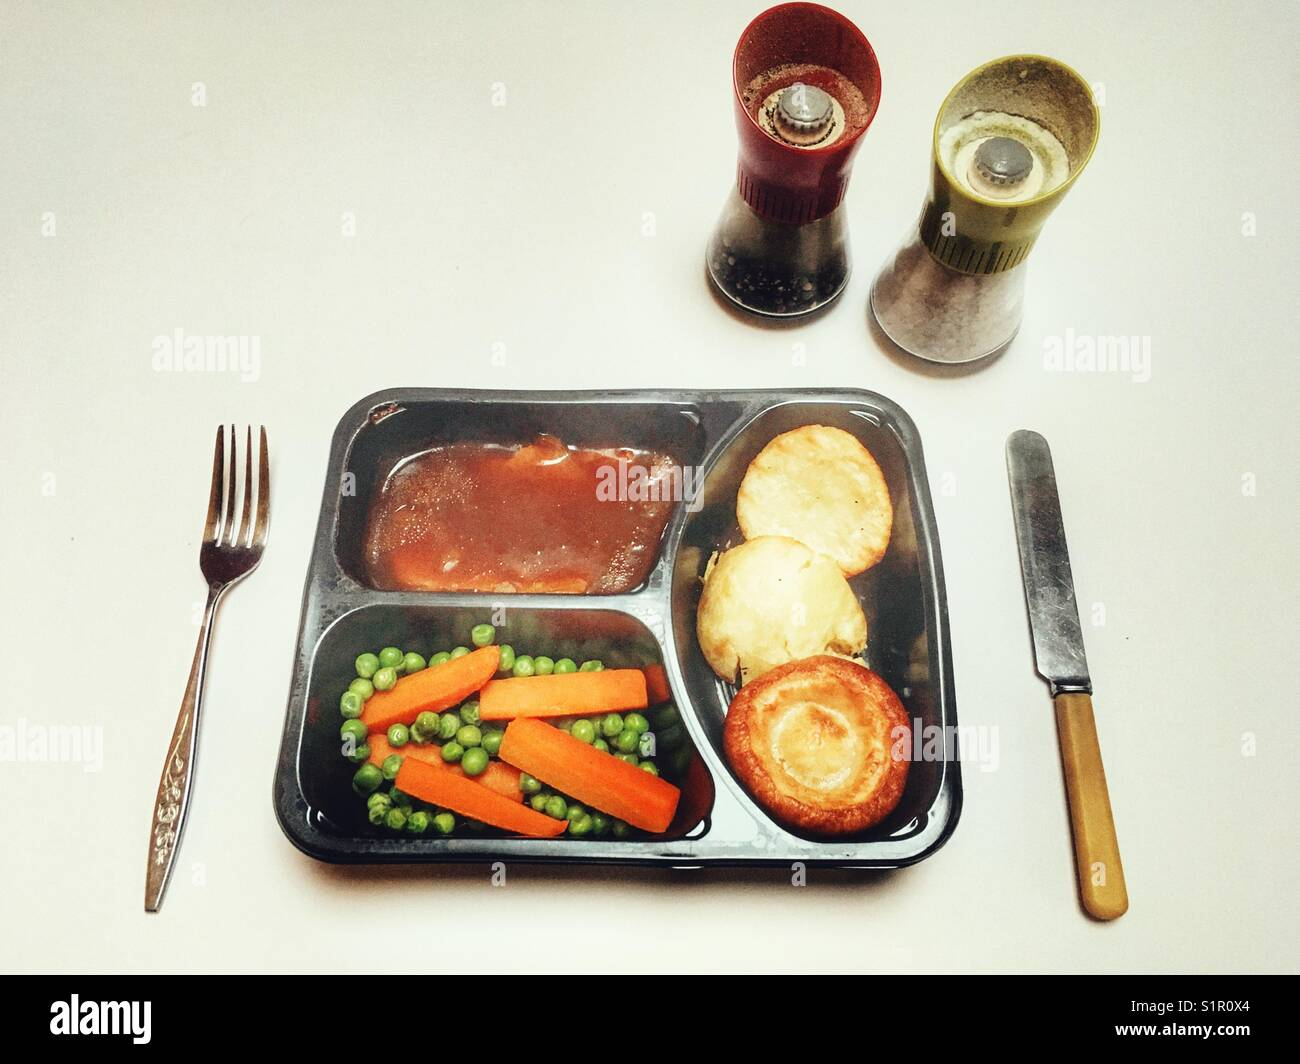 Waitrose Classic beef roast dinner - Stock Image